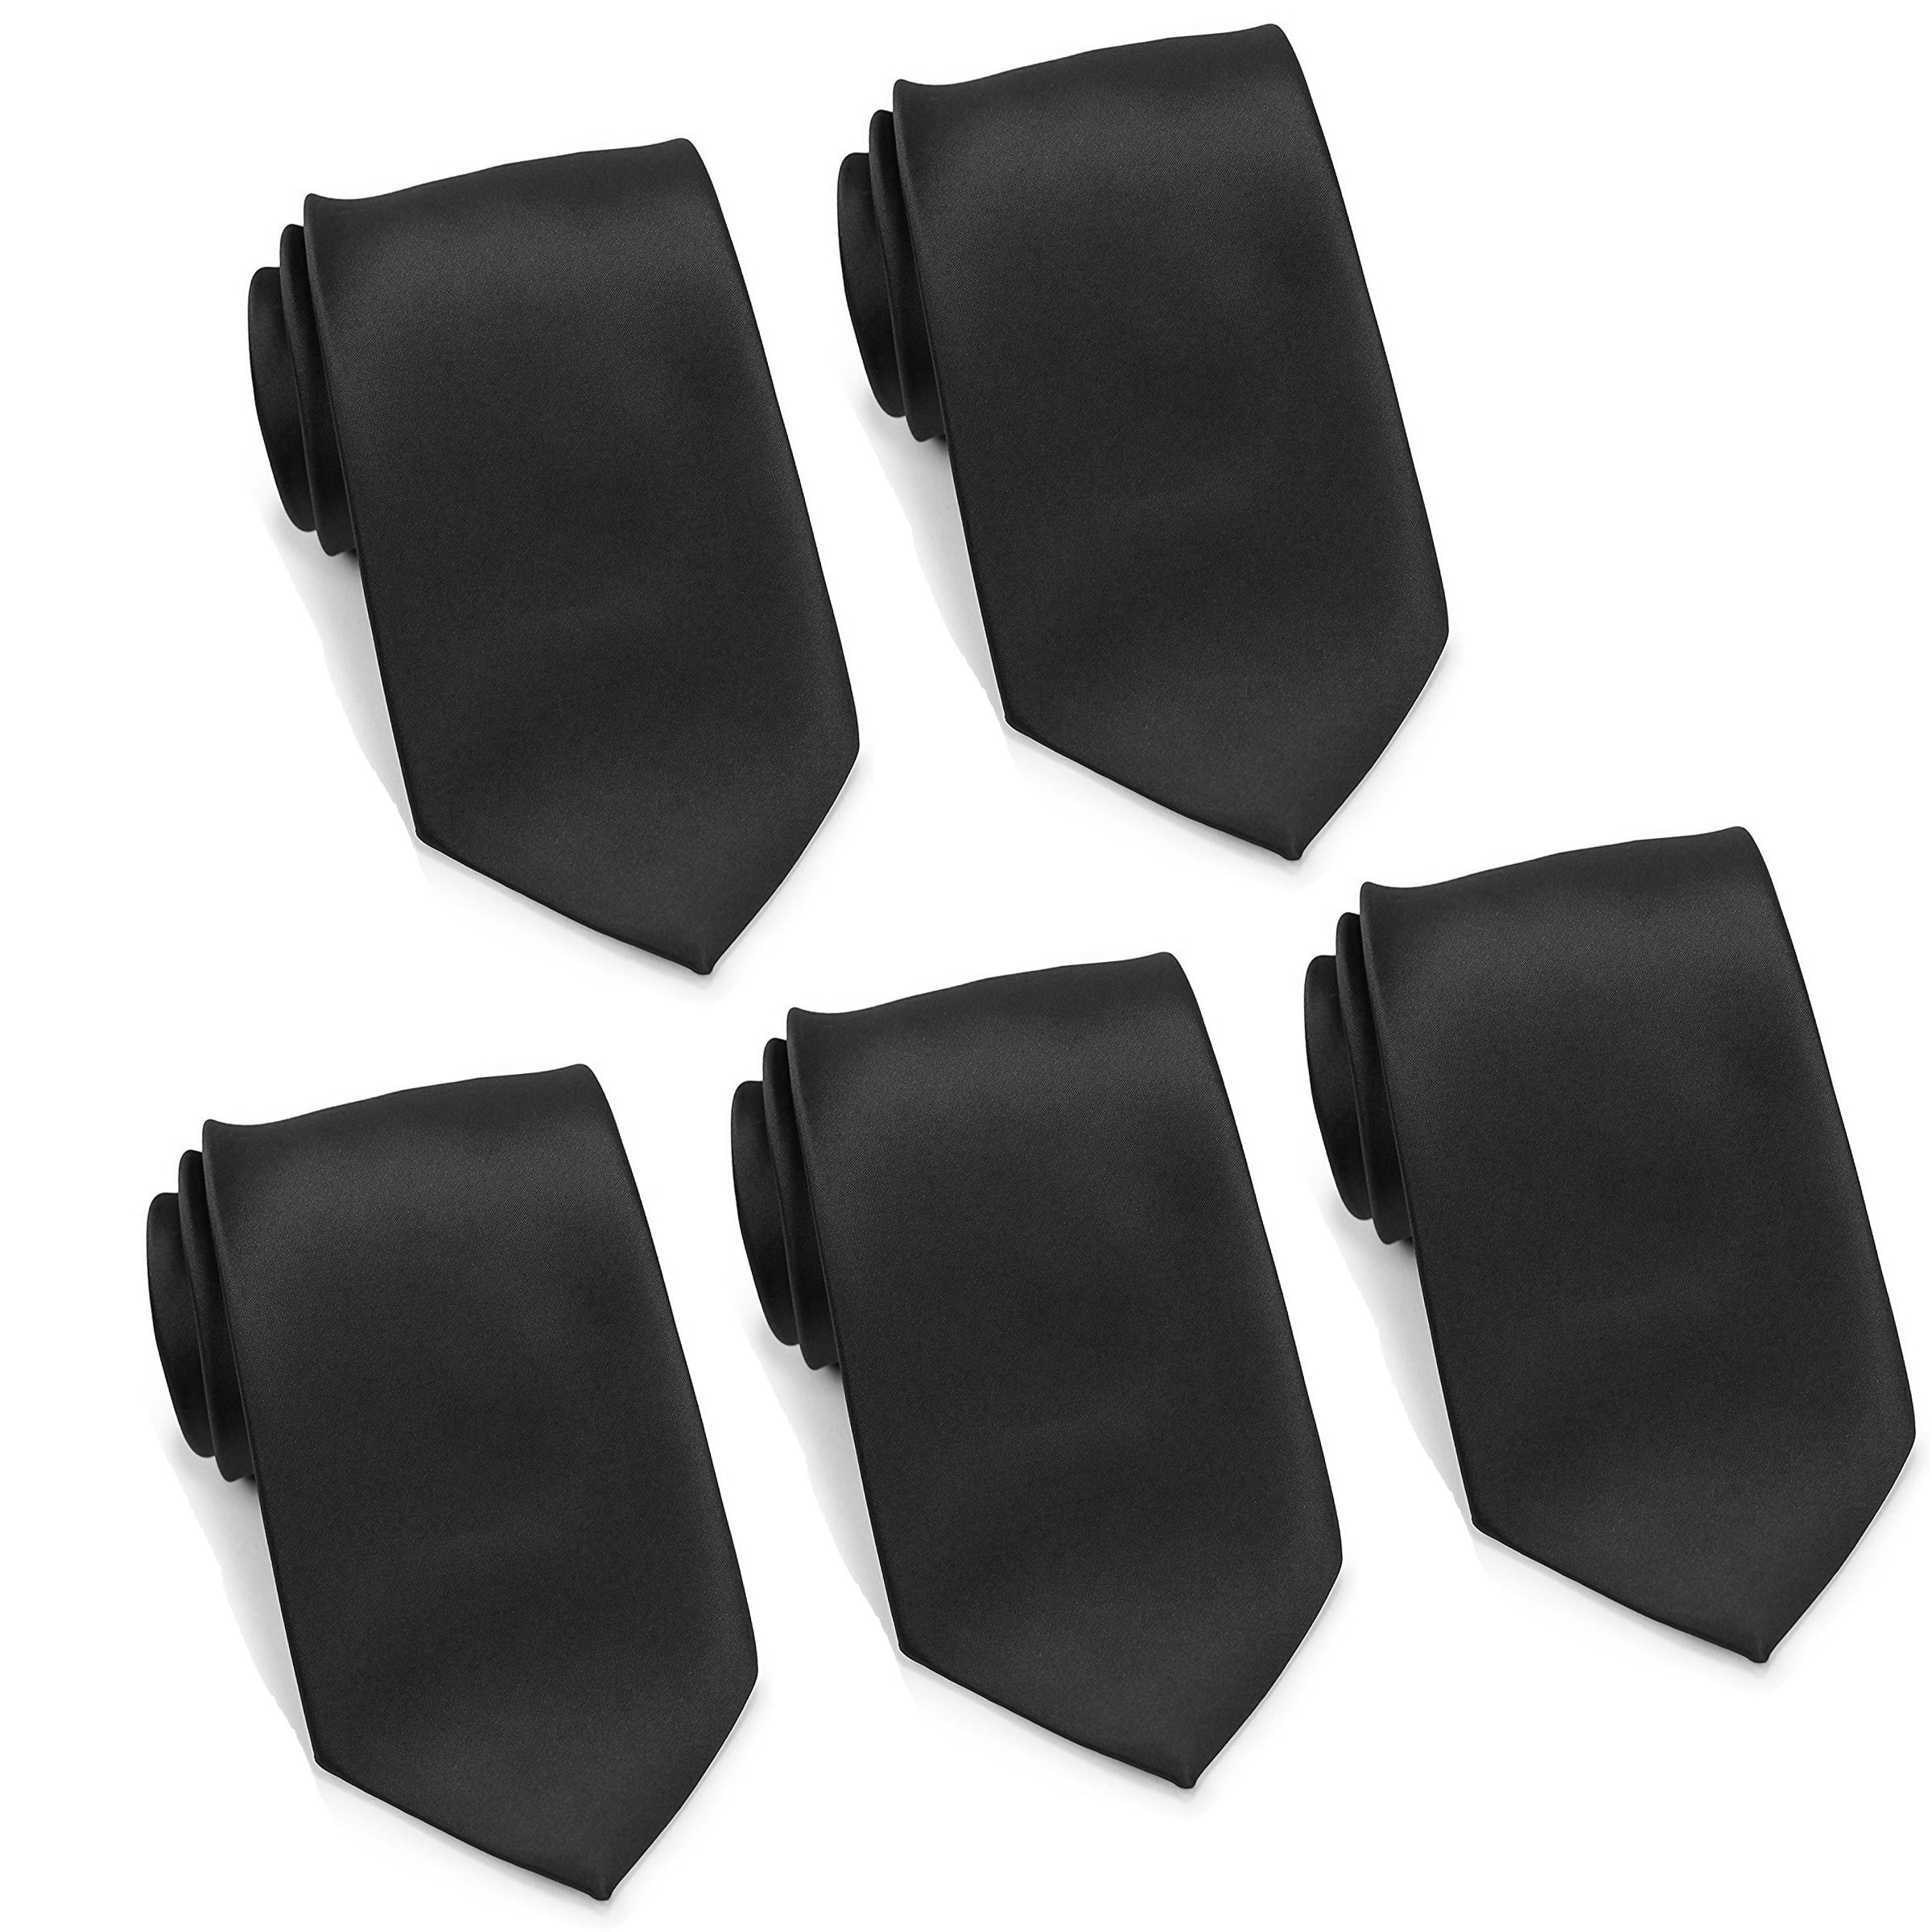 Mens Formal Tie Wholesale Lot of 5 Mens Solid Color Wedding Ties 3.5'' Satin Finish (Black)